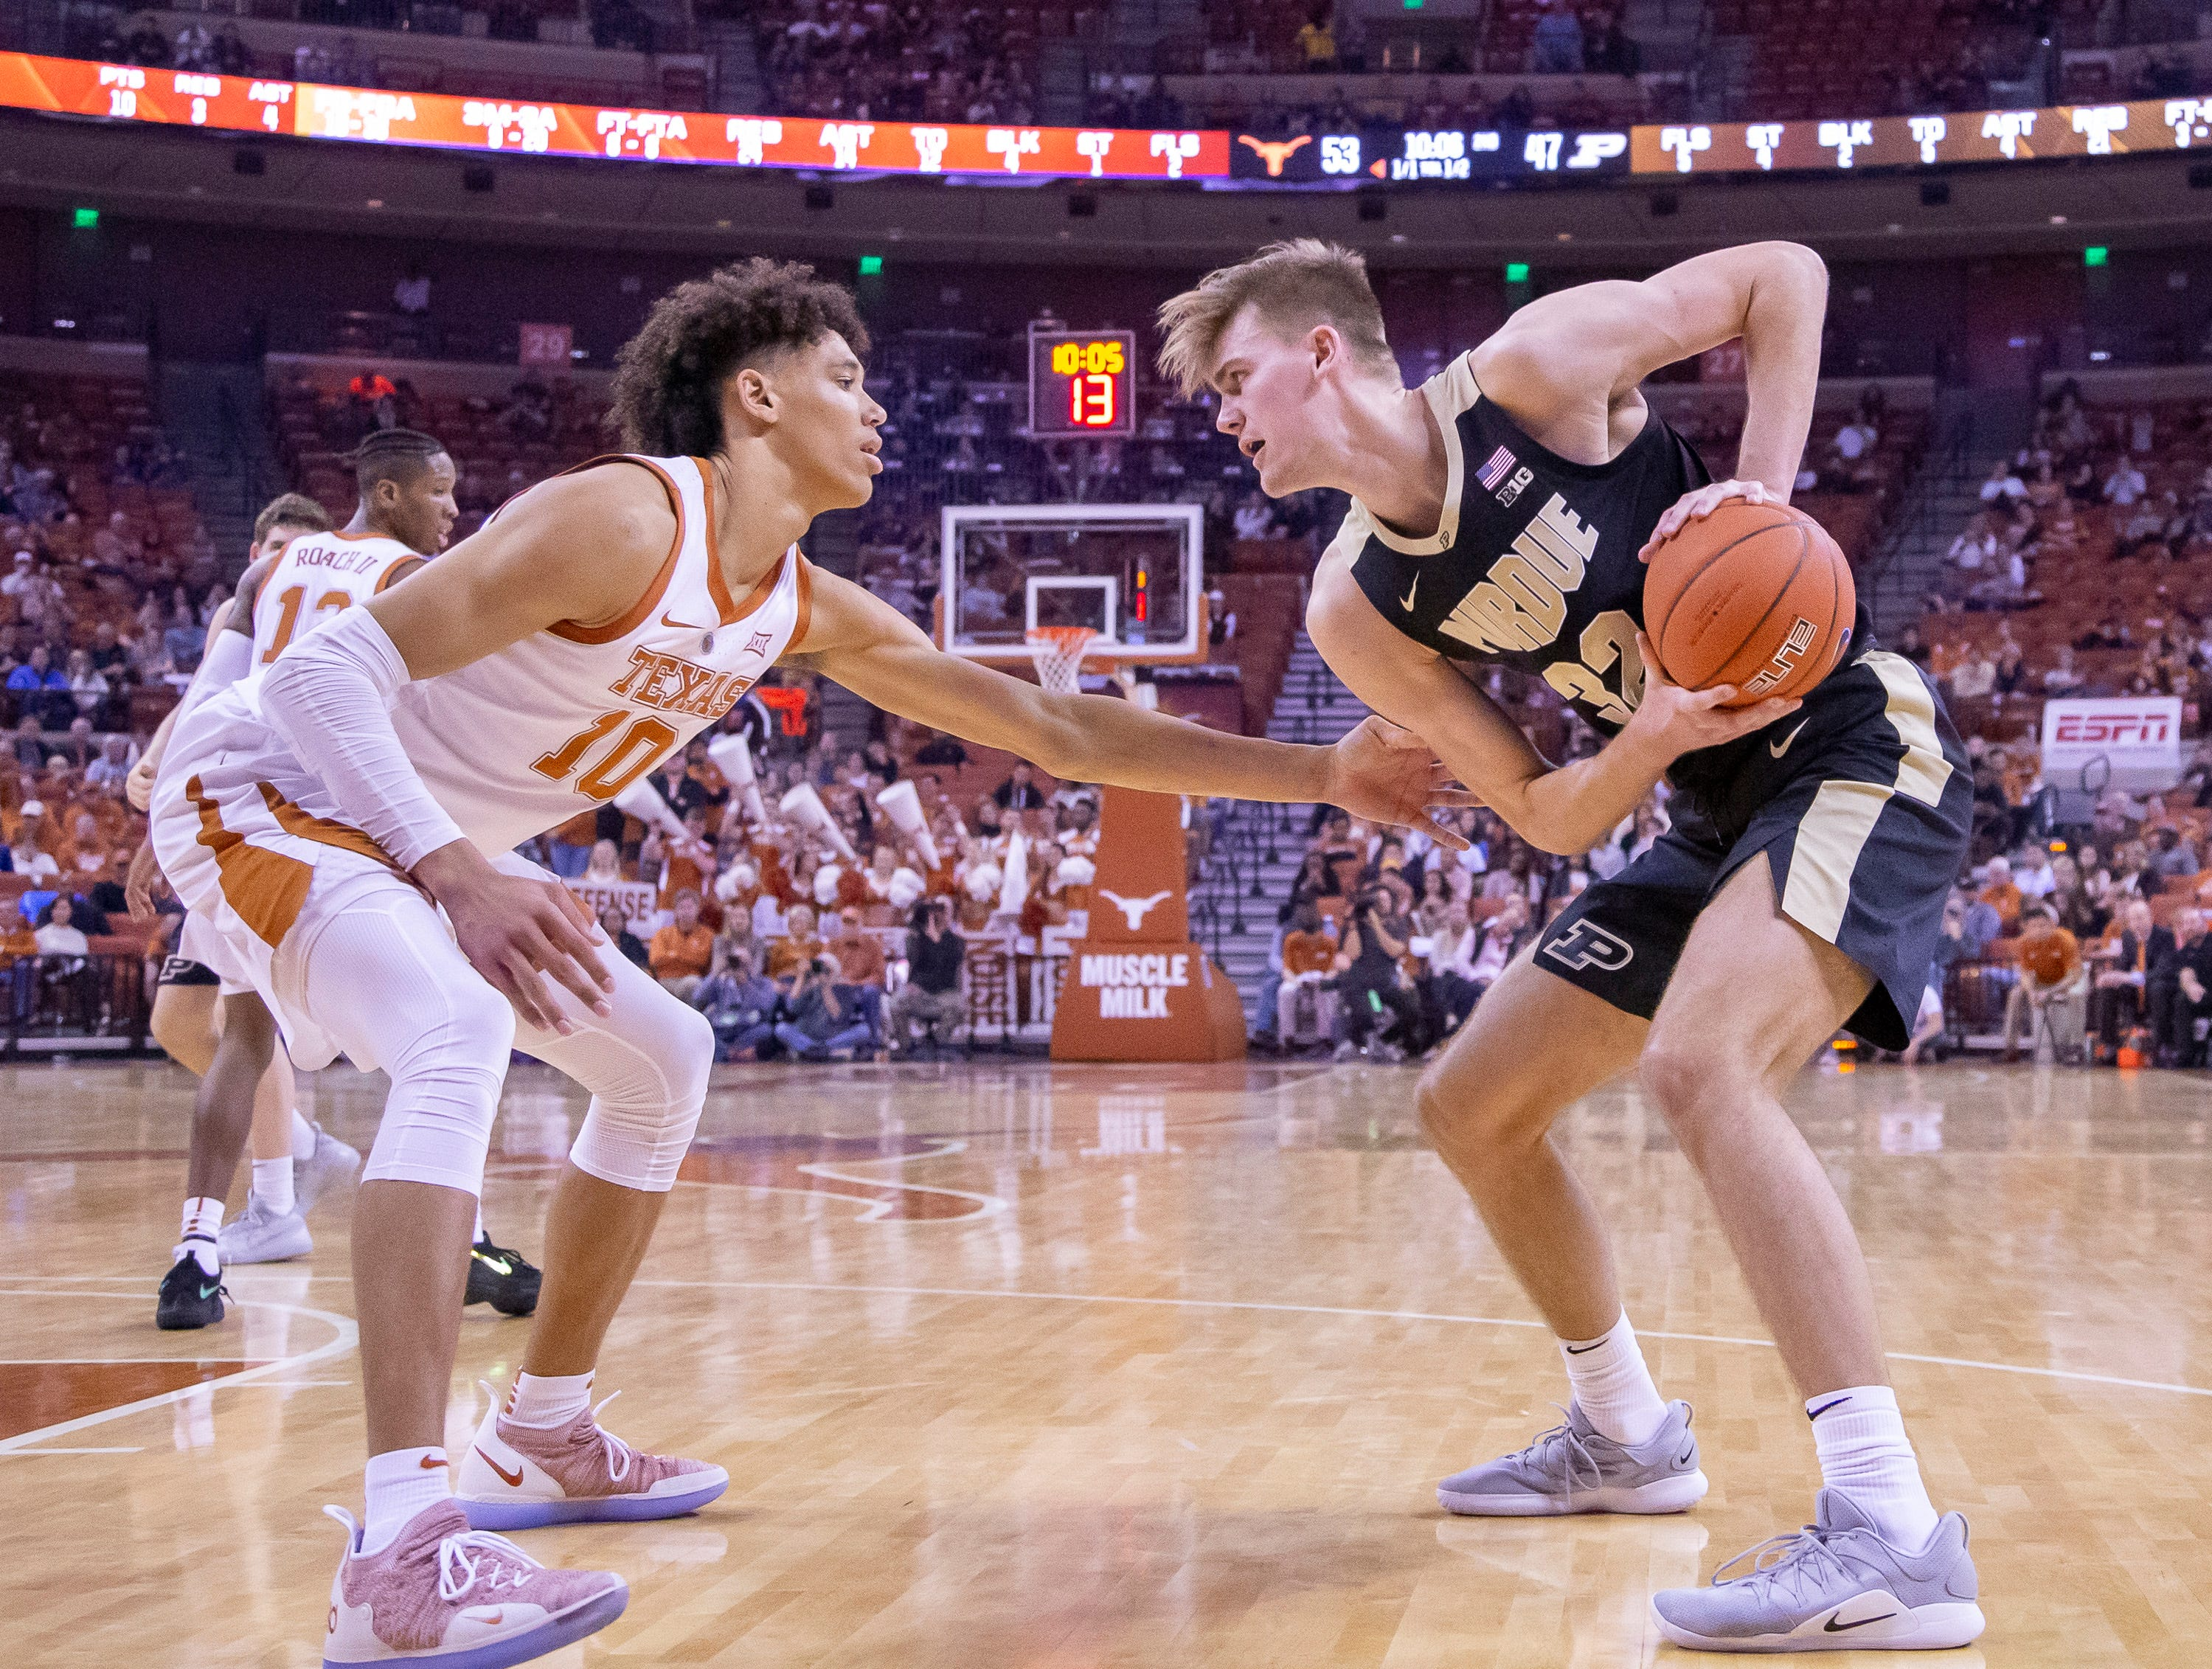 Dec 9, 2018; Austin, TX, USA; Texas Longhorns forward Jaxson Hayes (10) defends Purdue Boilermakers center Matt Haarms (32) during the second half at Frank Erwin Center. Mandatory Credit: John Gutierrez-USA TODAY Sports